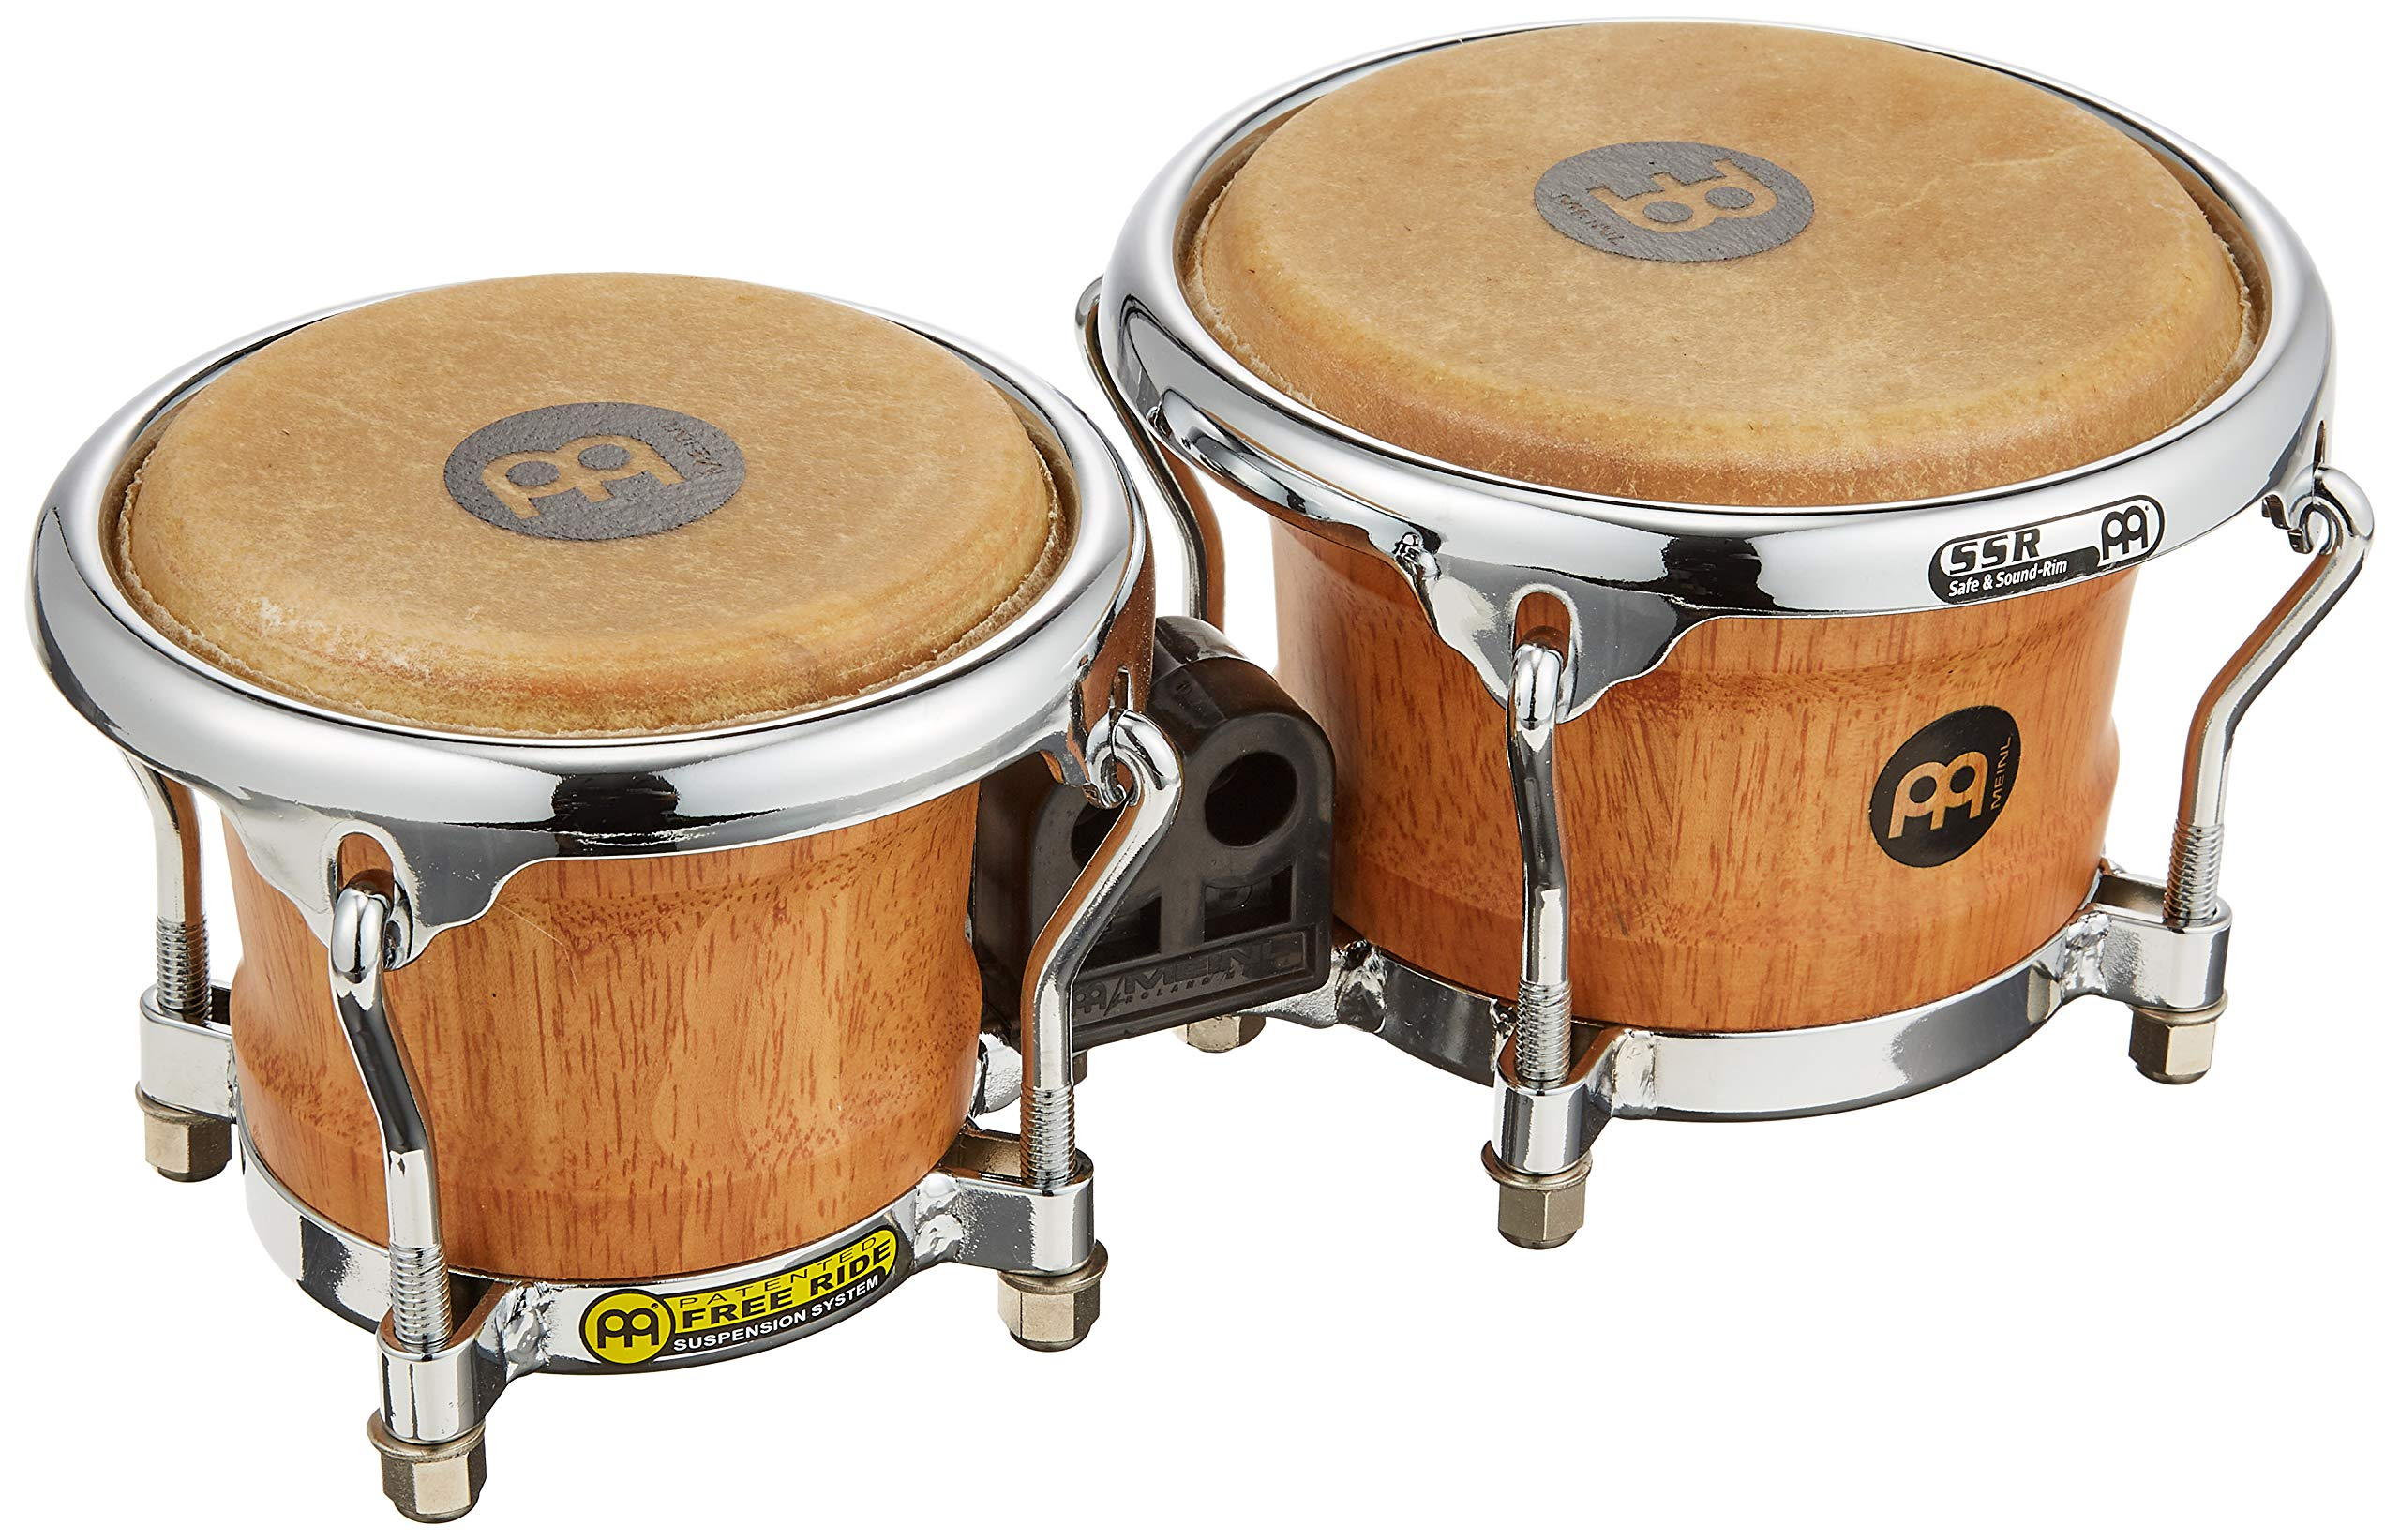 Meinl Percussion Mini Wood Bongos Skin Heads-NOT Made in China-Super Natural Finish and Free Ride Suspension System, 2-Year Warranty (FWB100SNT-M) by Meinl Percussion